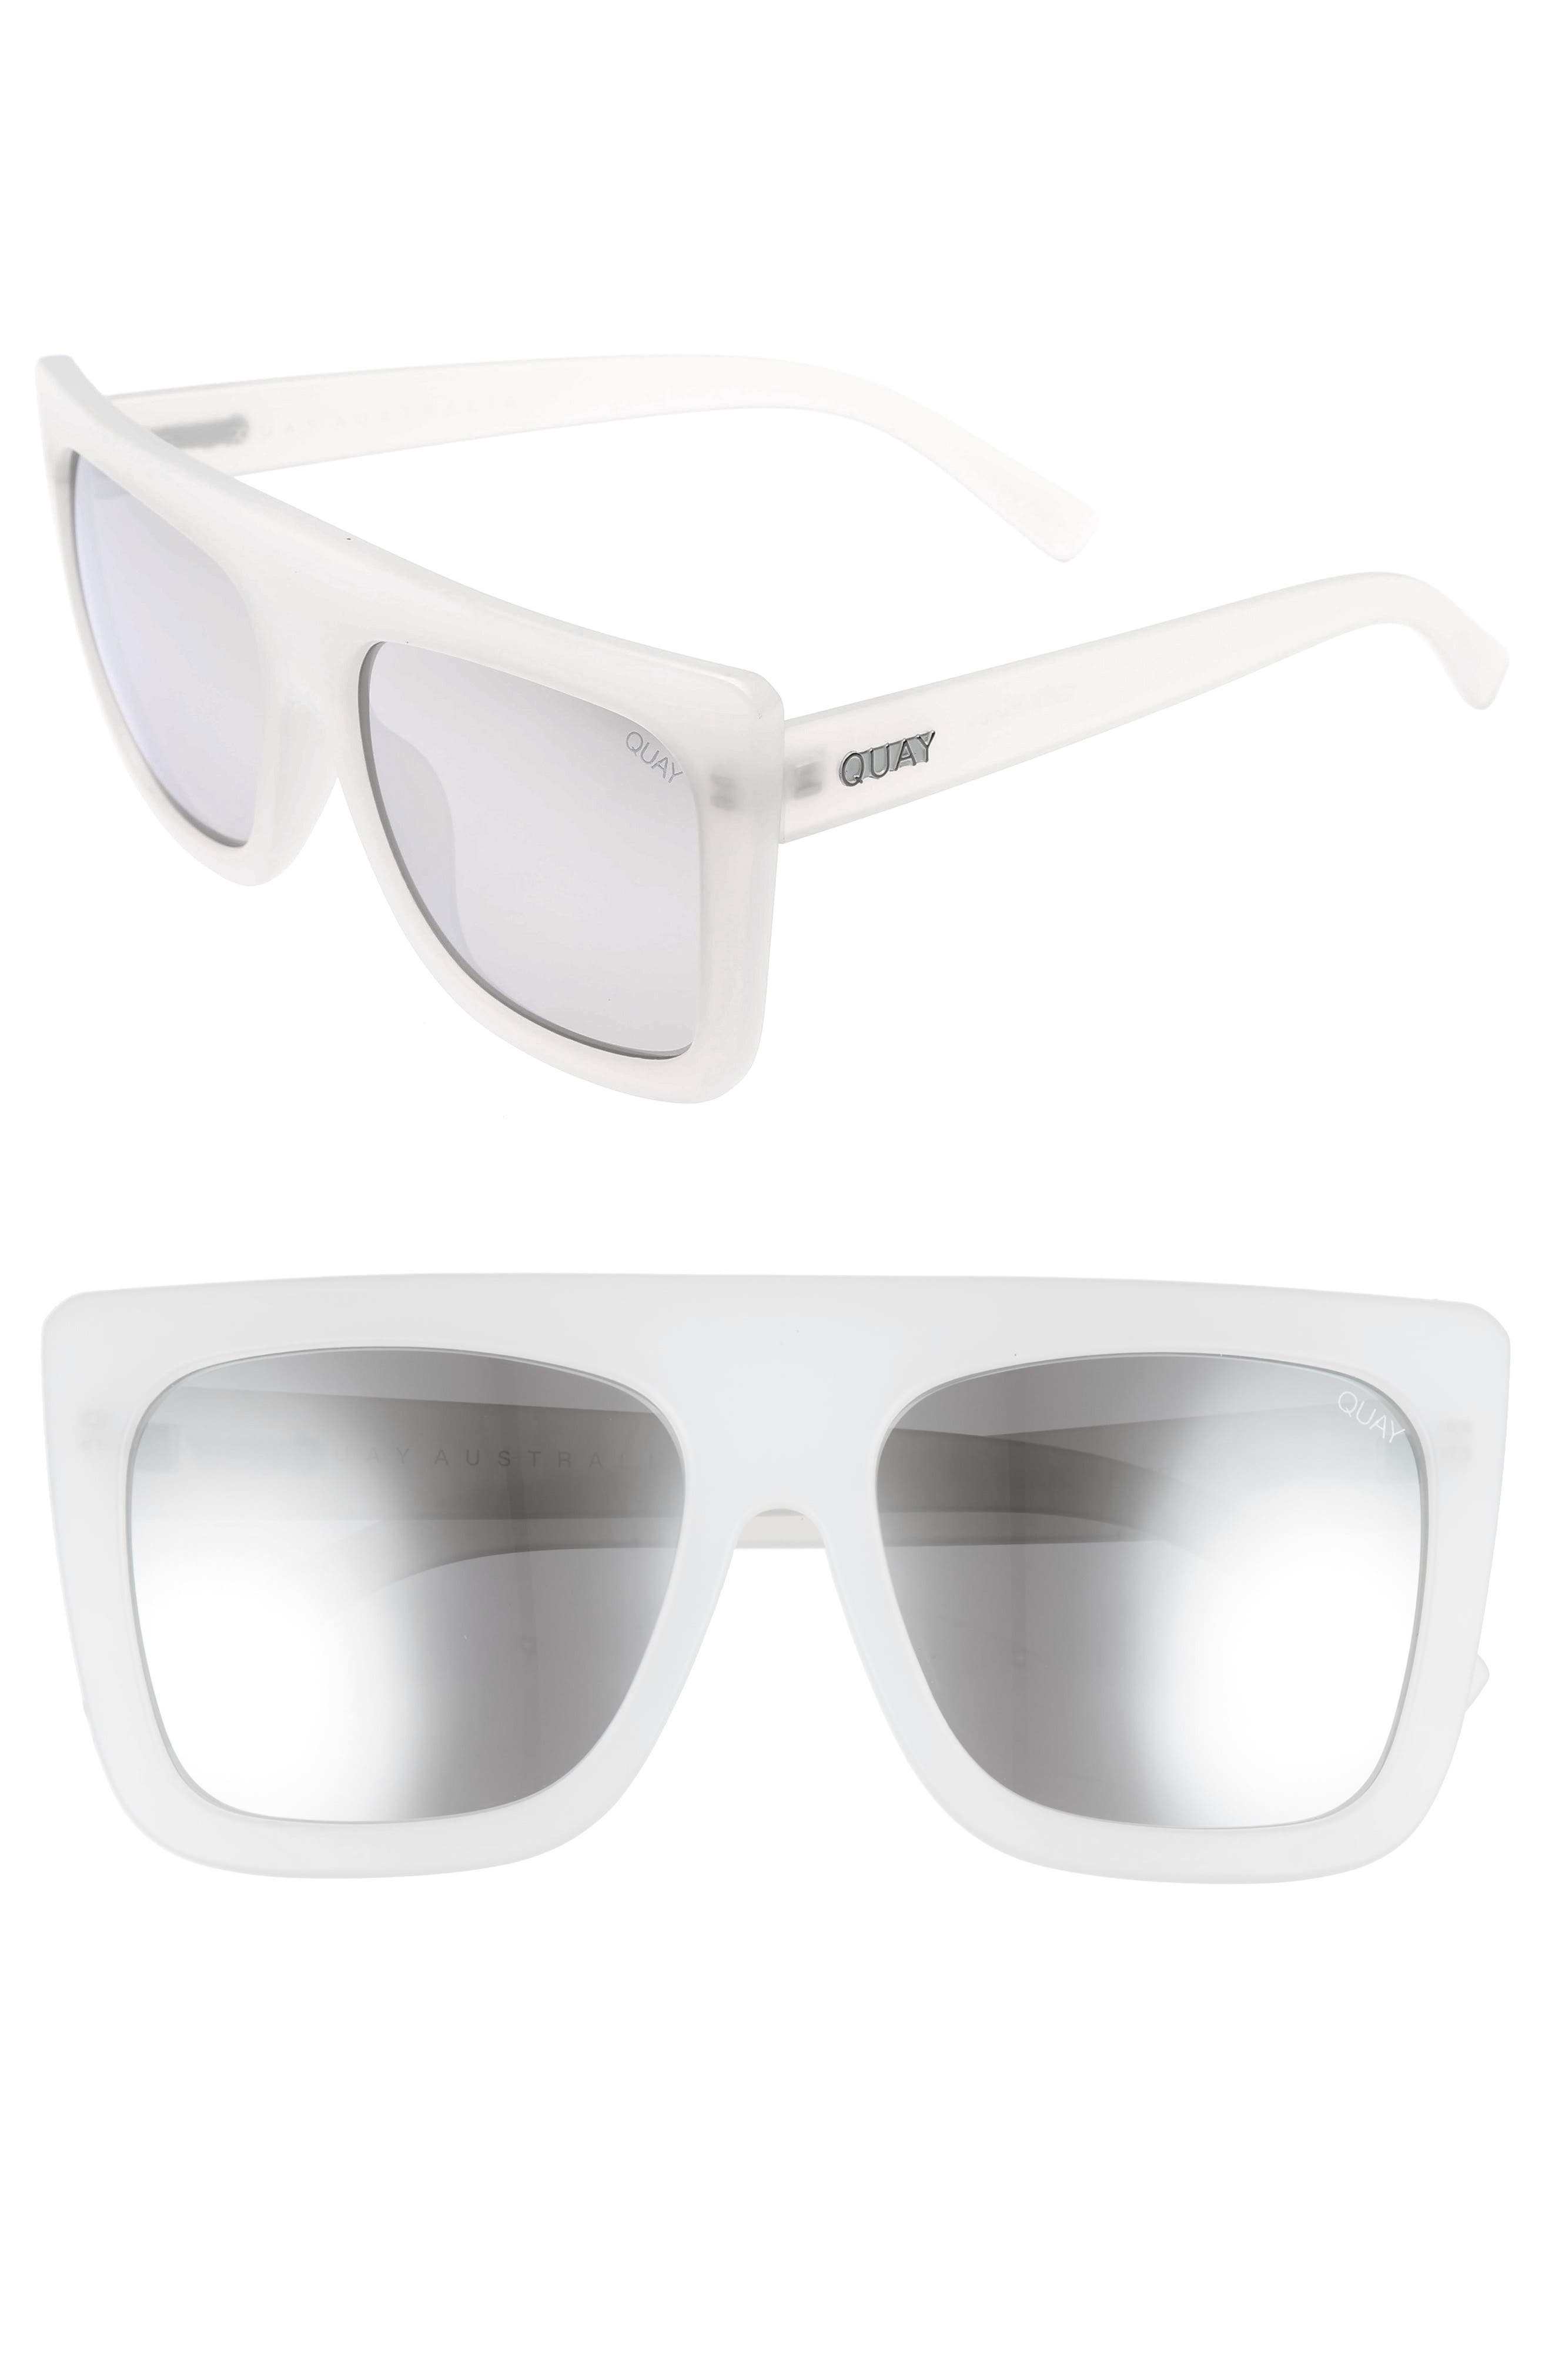 Cafe Racer 60mm Sunglasses,                             Main thumbnail 1, color,                             White Silver